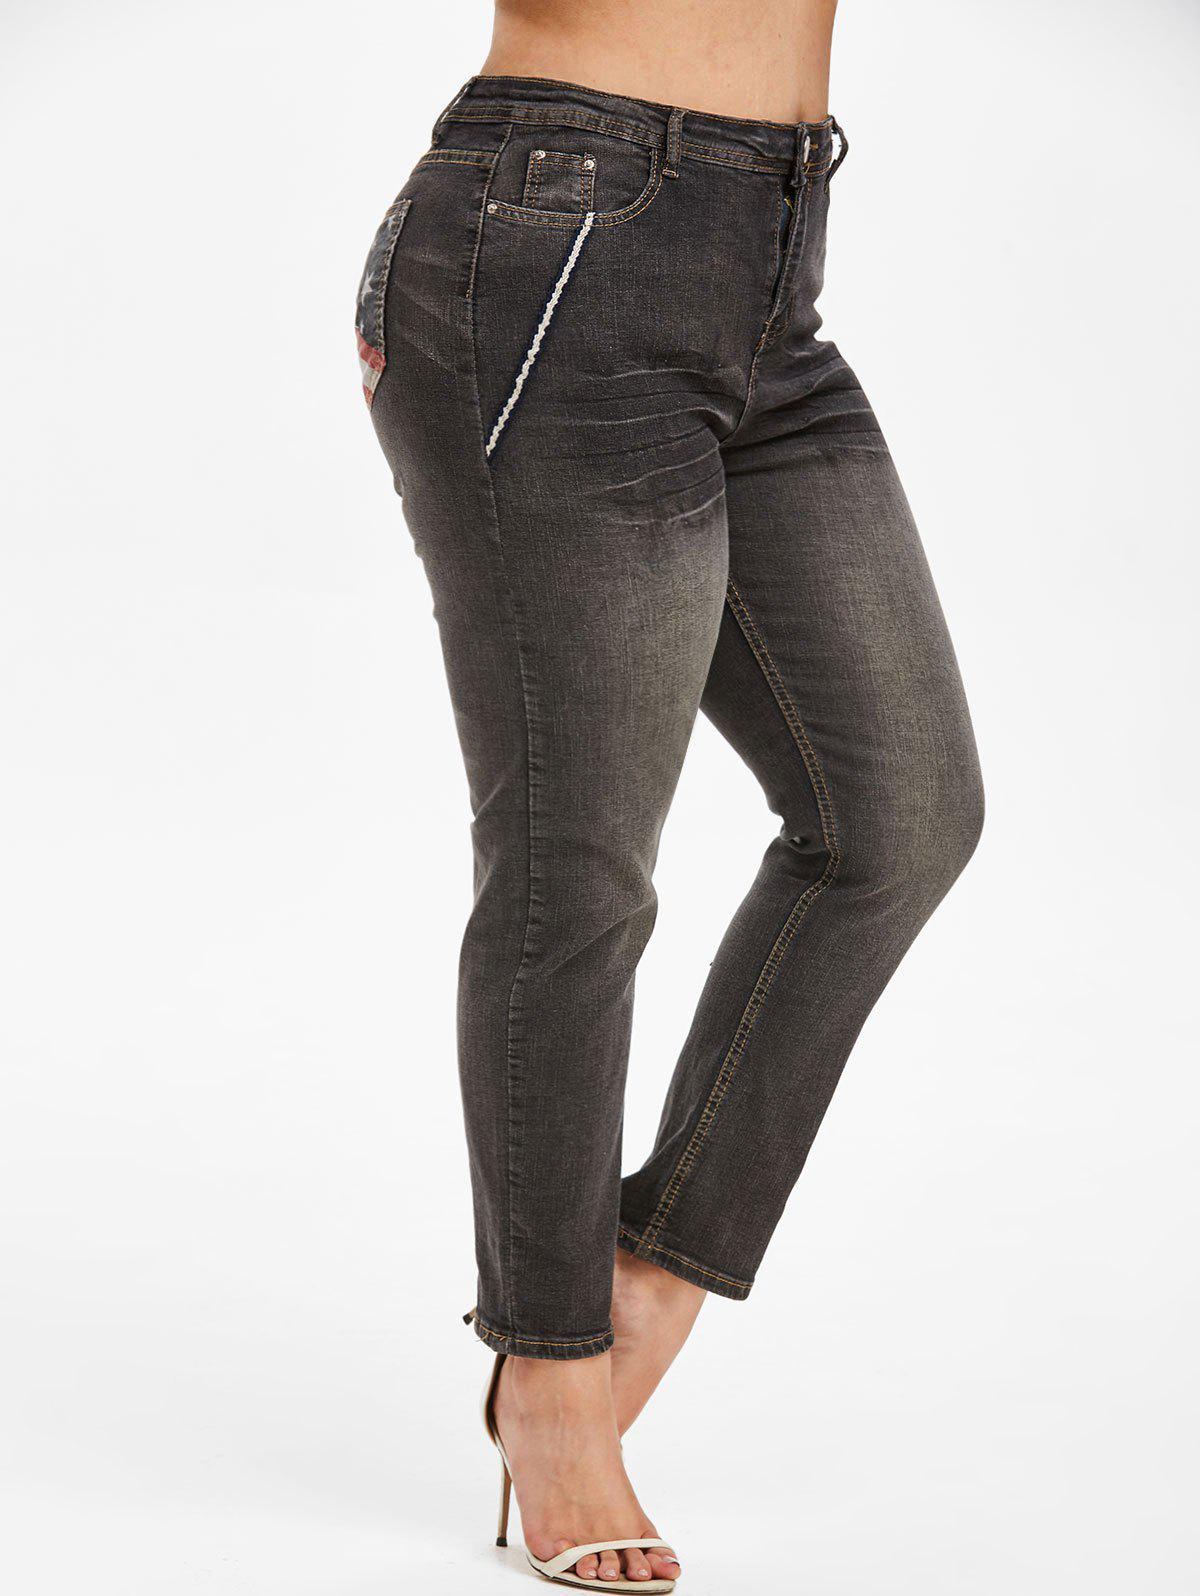 American Flag Contrast Trim Plus Size Stovepipe Jeans - BLACK 4XL